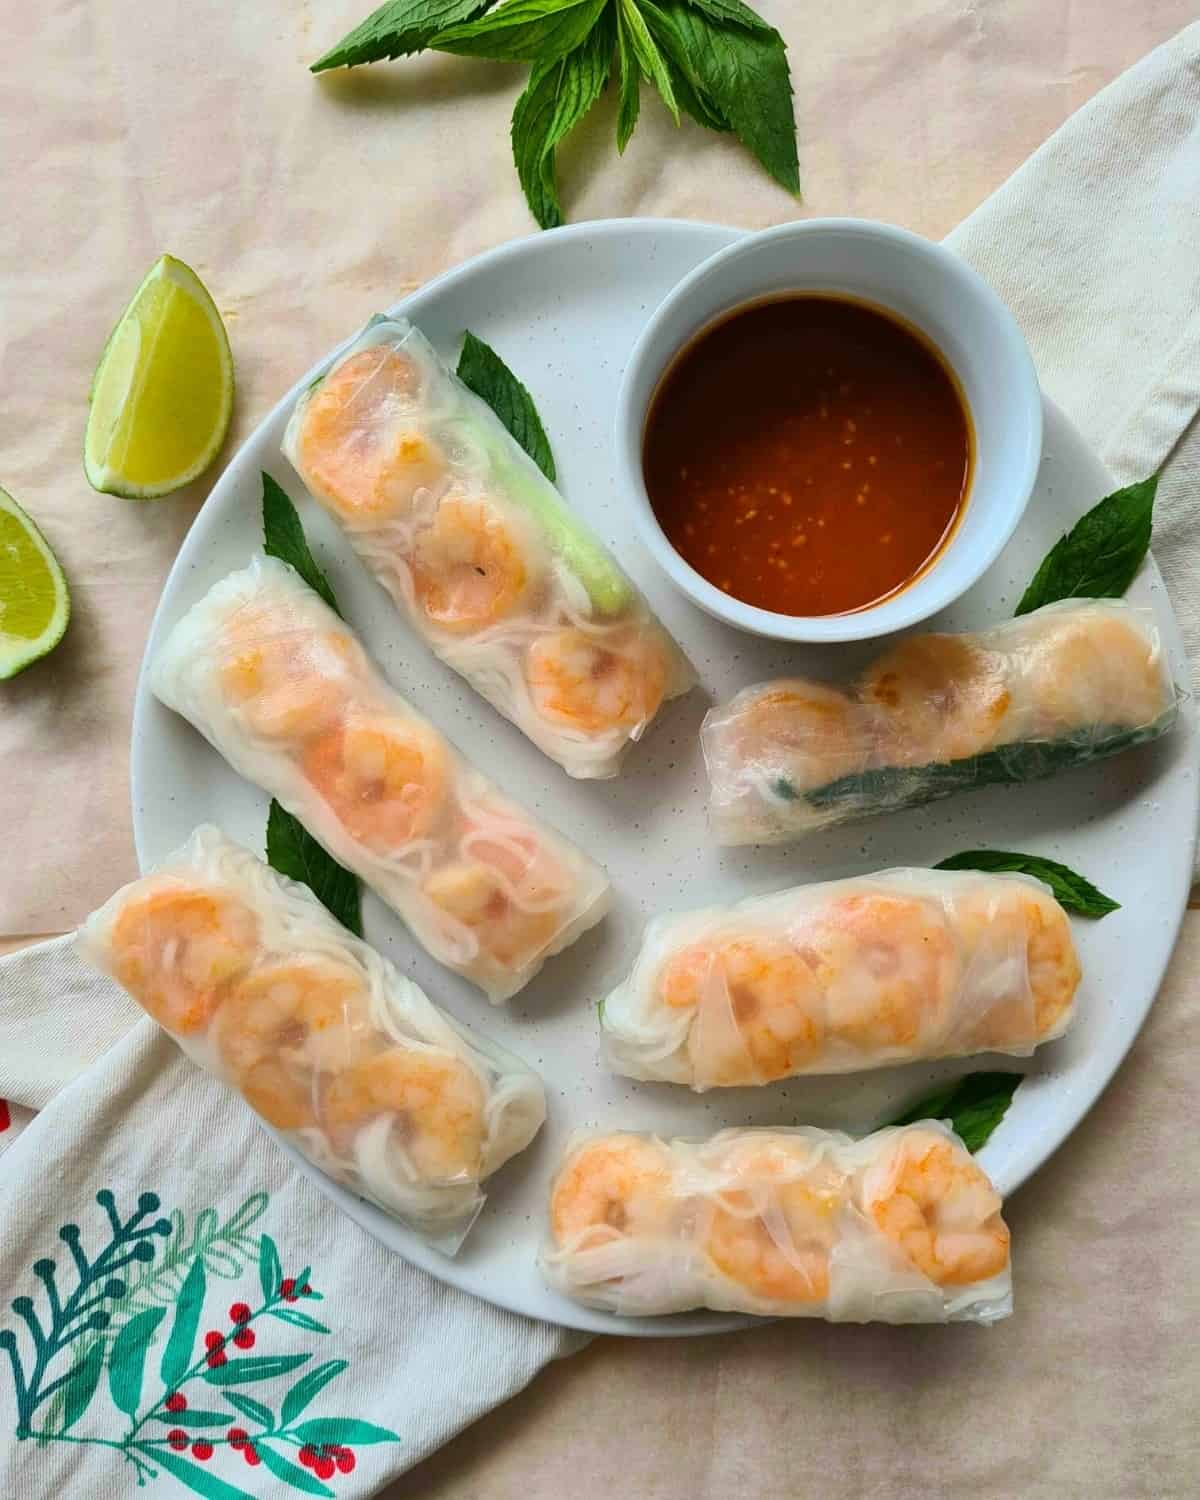 Full plate of rice paper rolls with sauce